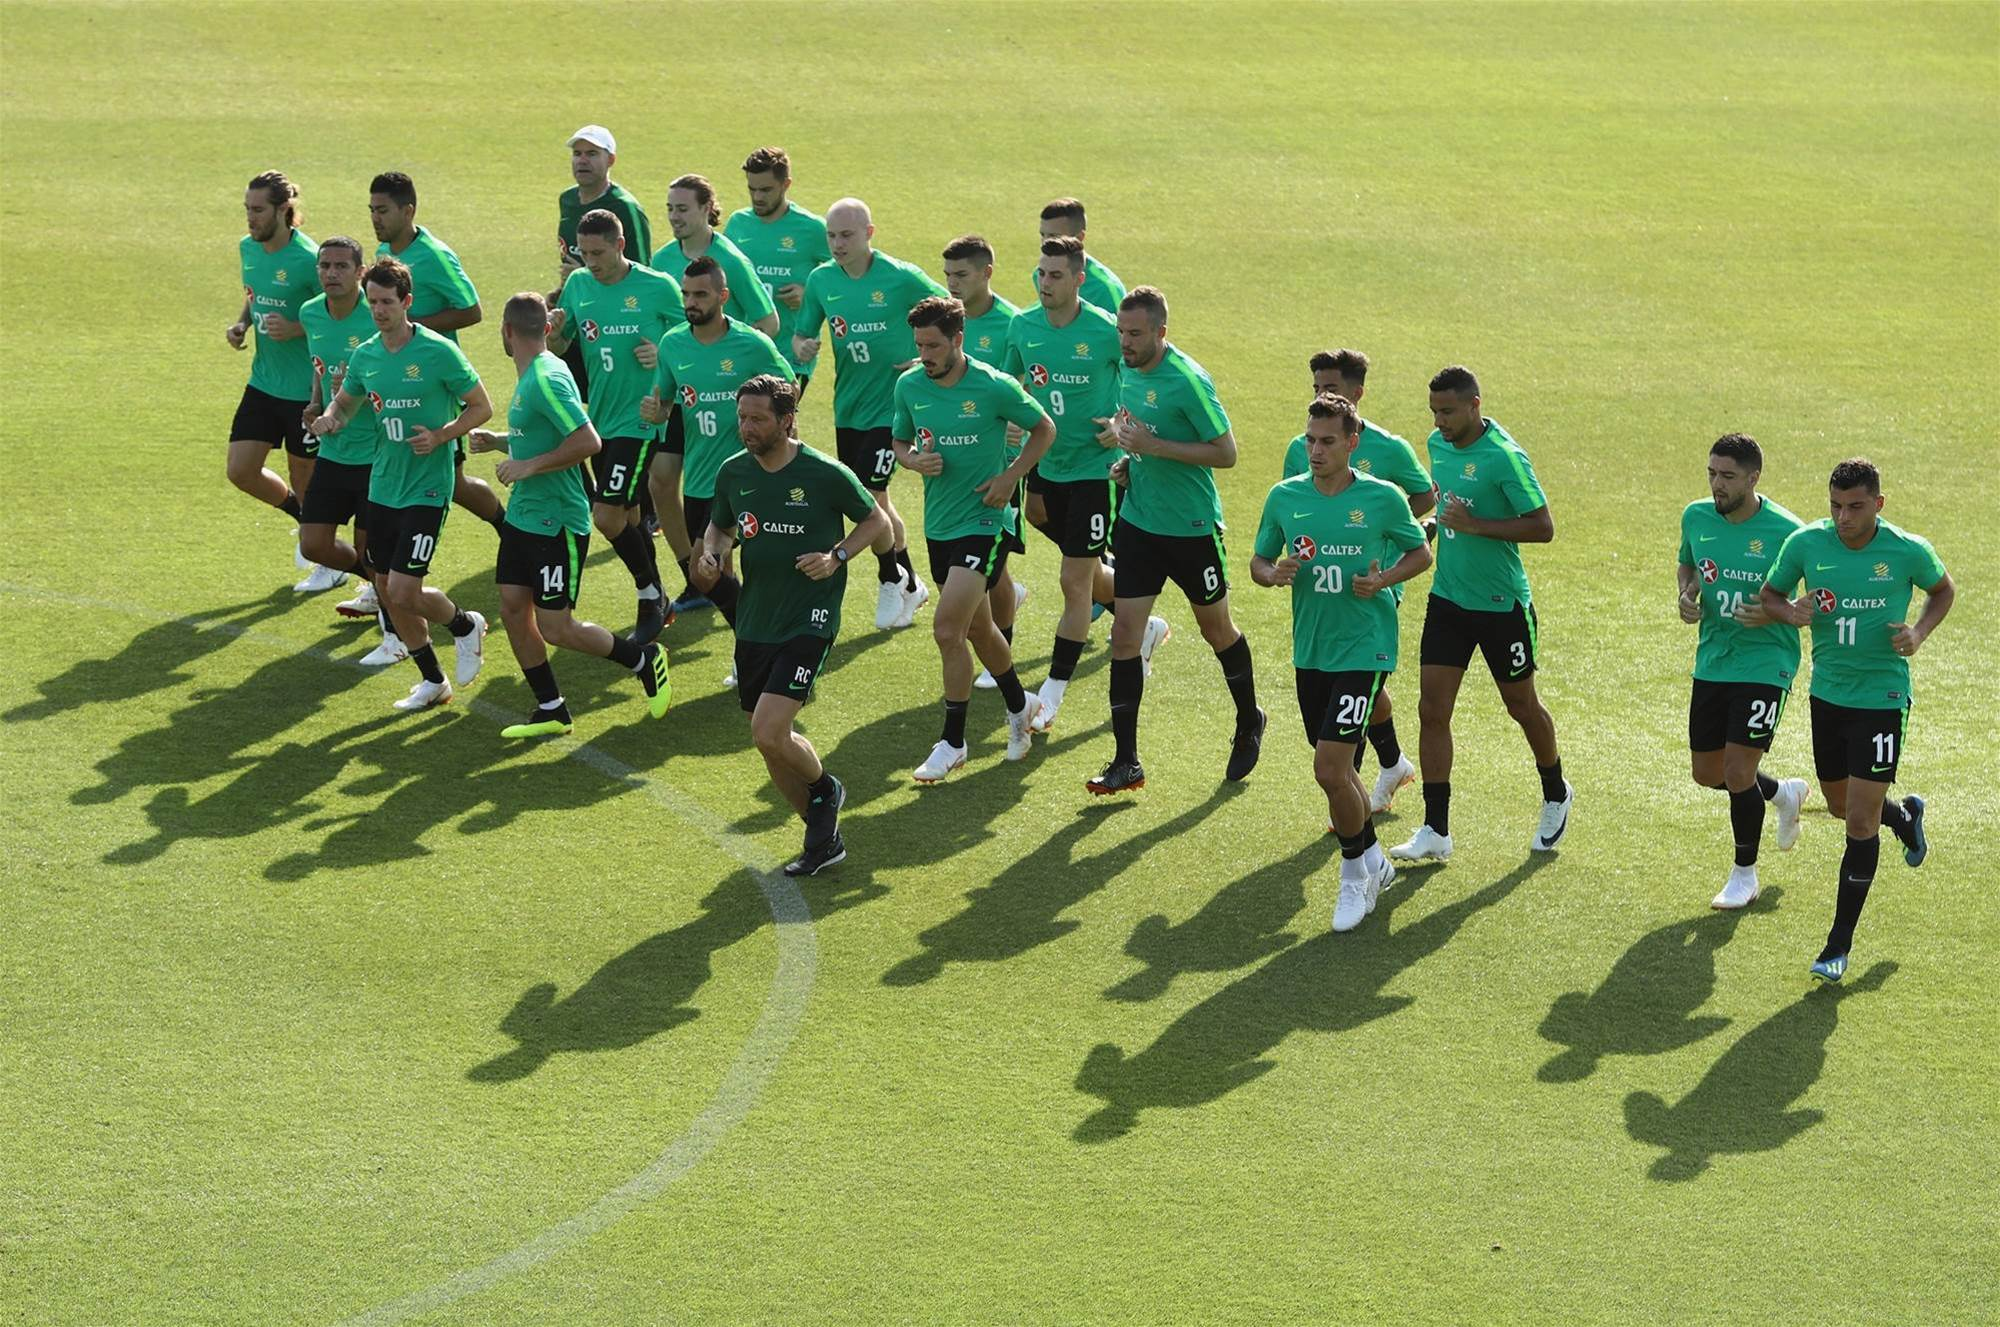 Gallery: Socceroos training pics